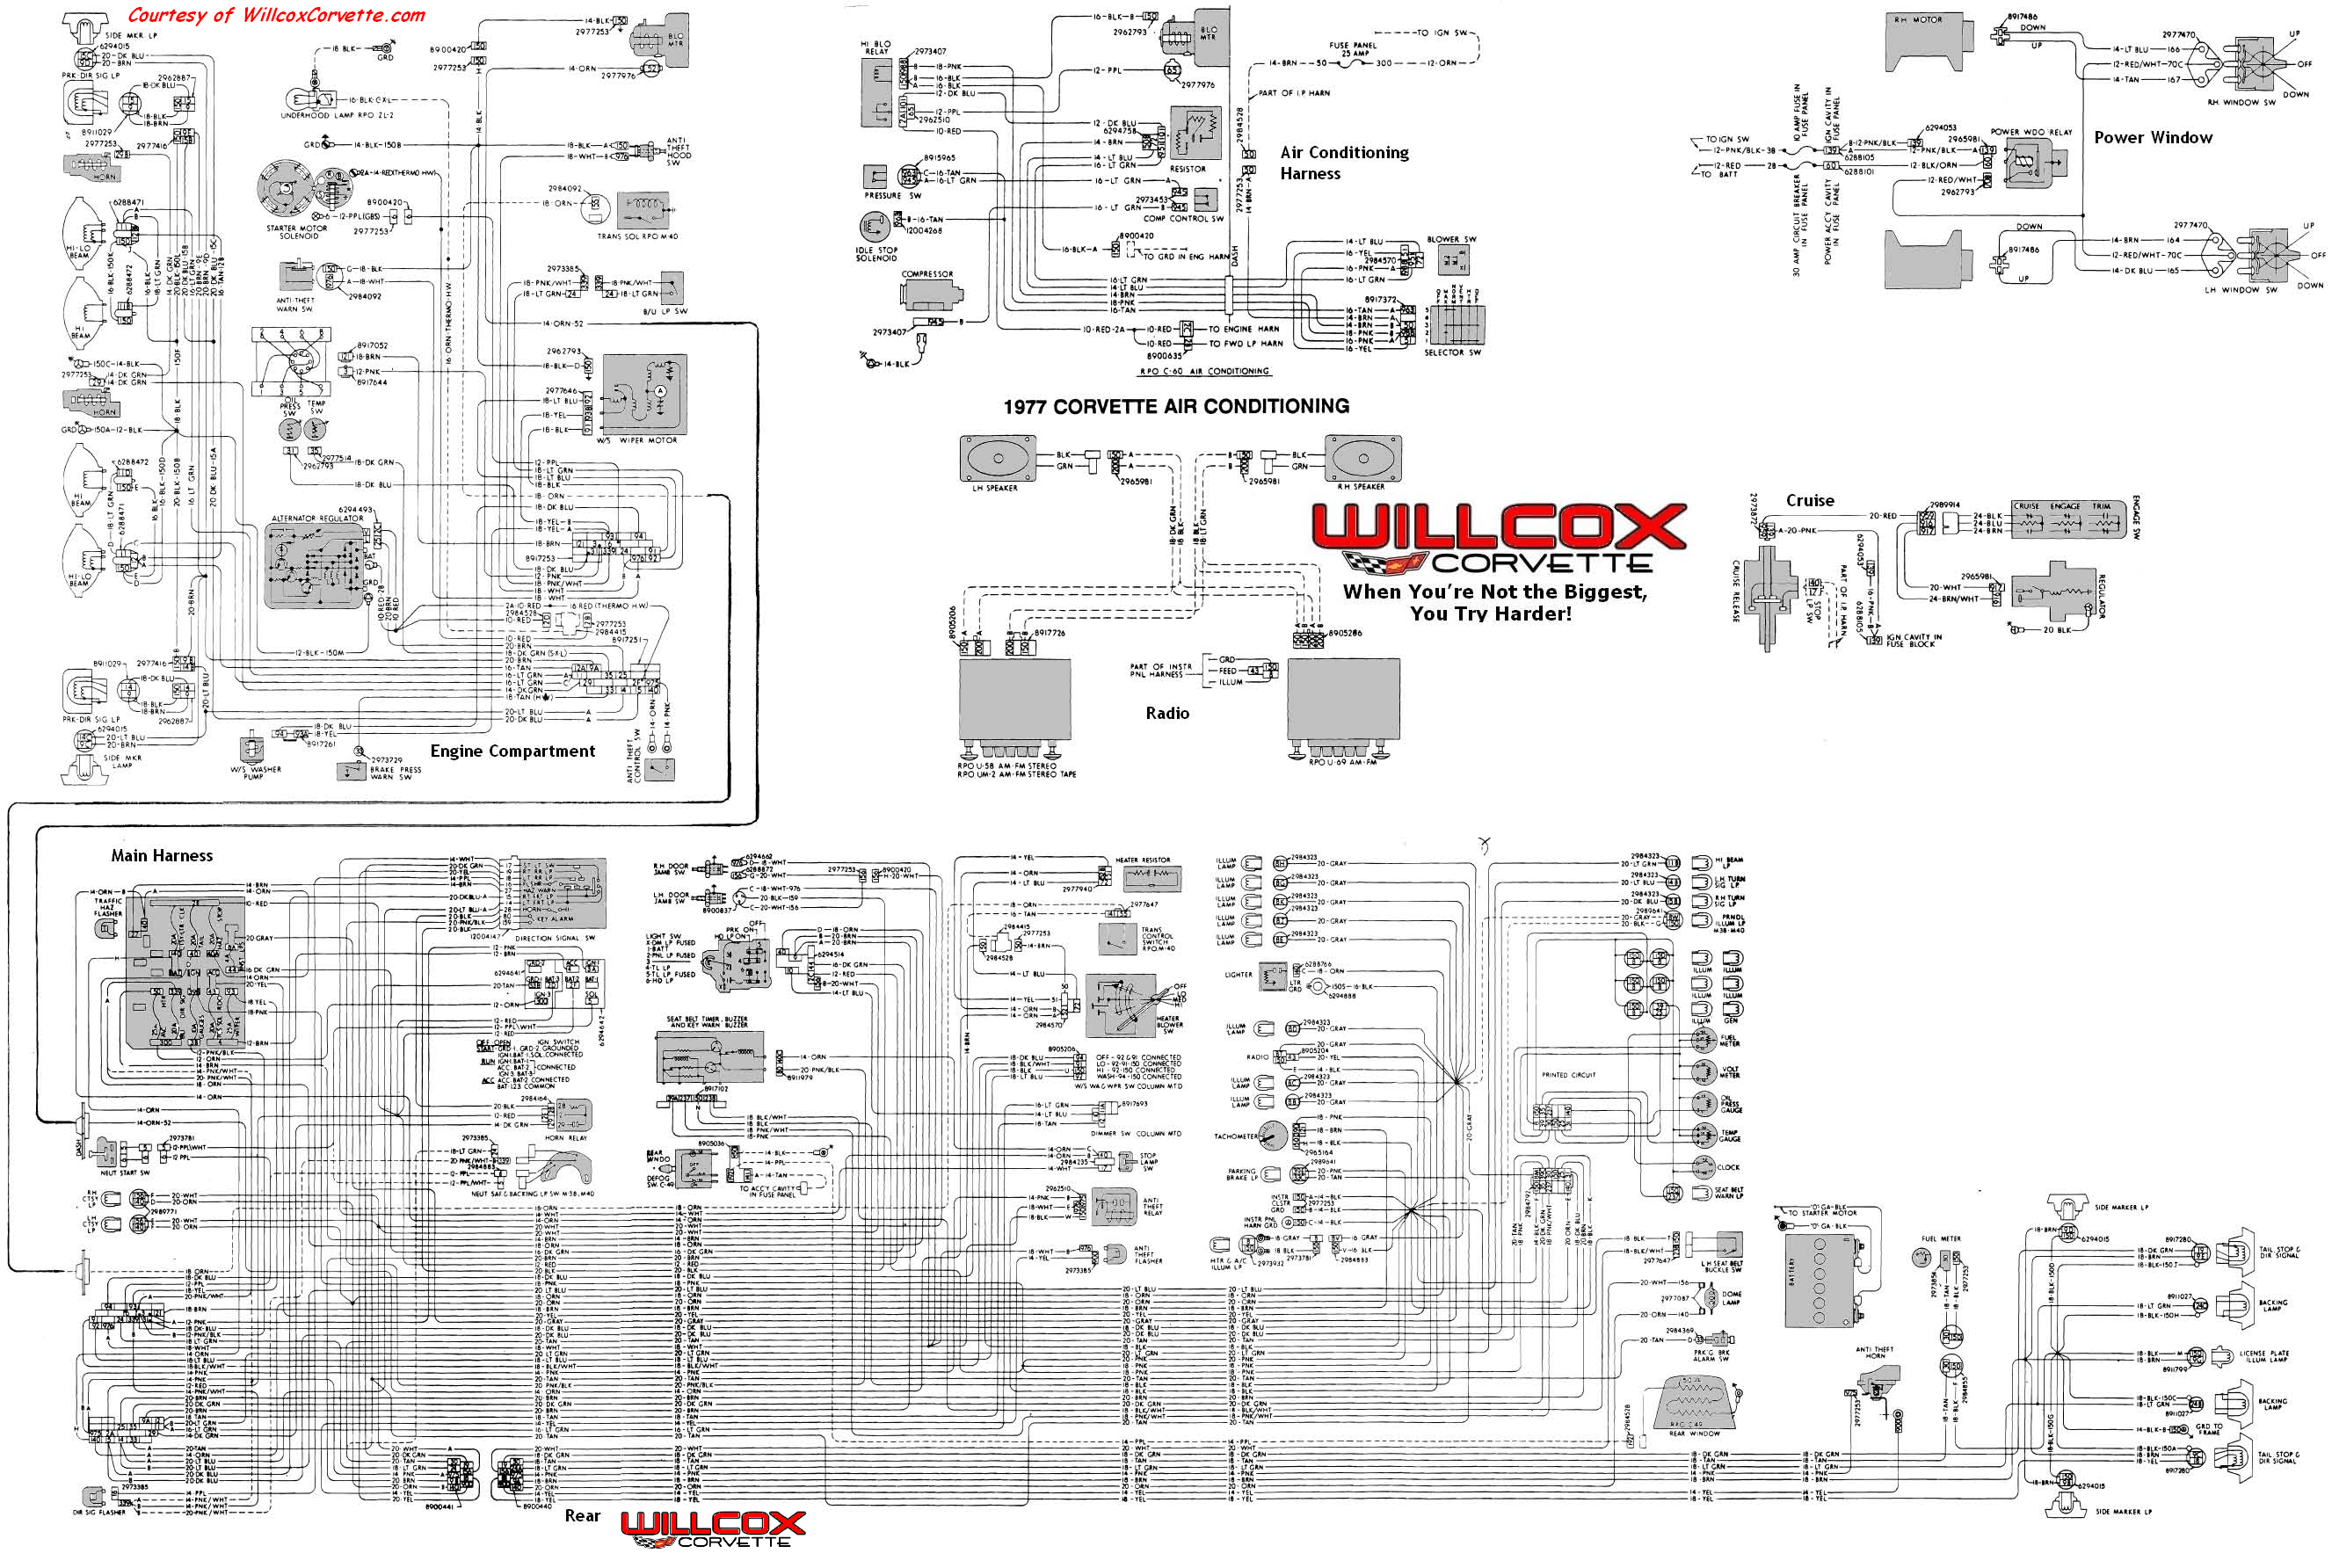 1977 Corvette Tracer Wiring Diagram Tracer Schematic Willcox